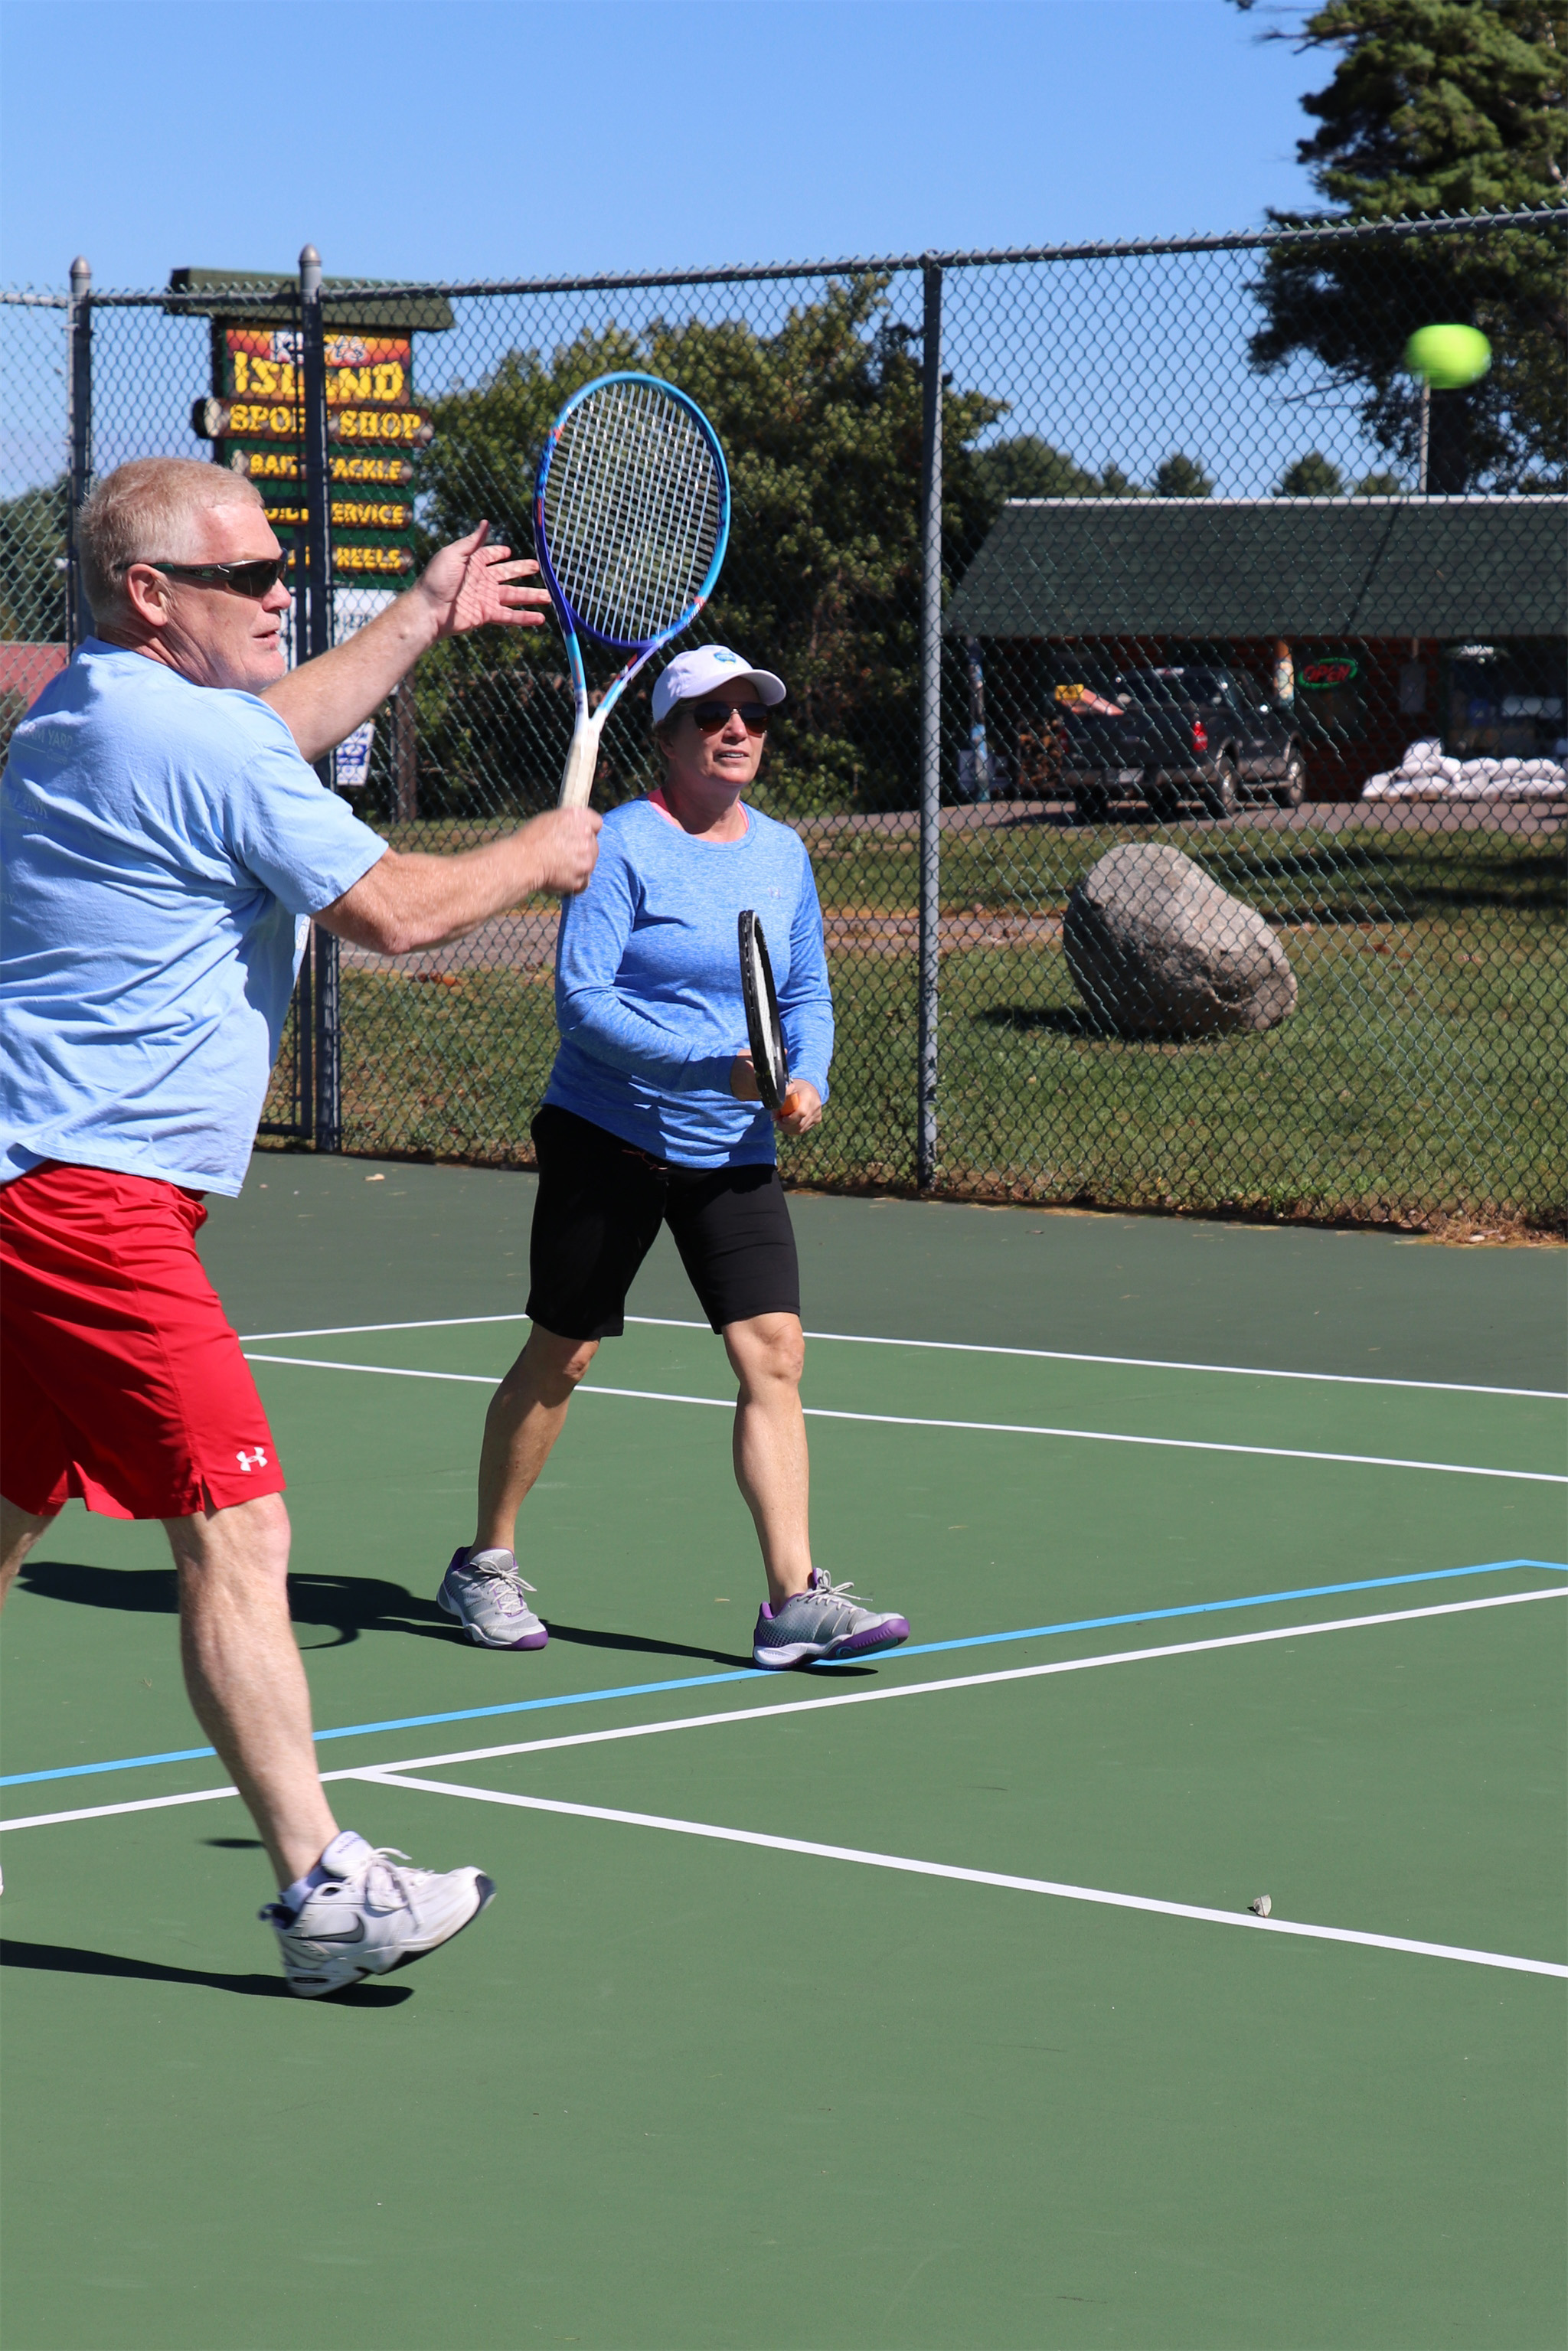 It's a great day to play tennis in Minocqua. Kim Johnson photo